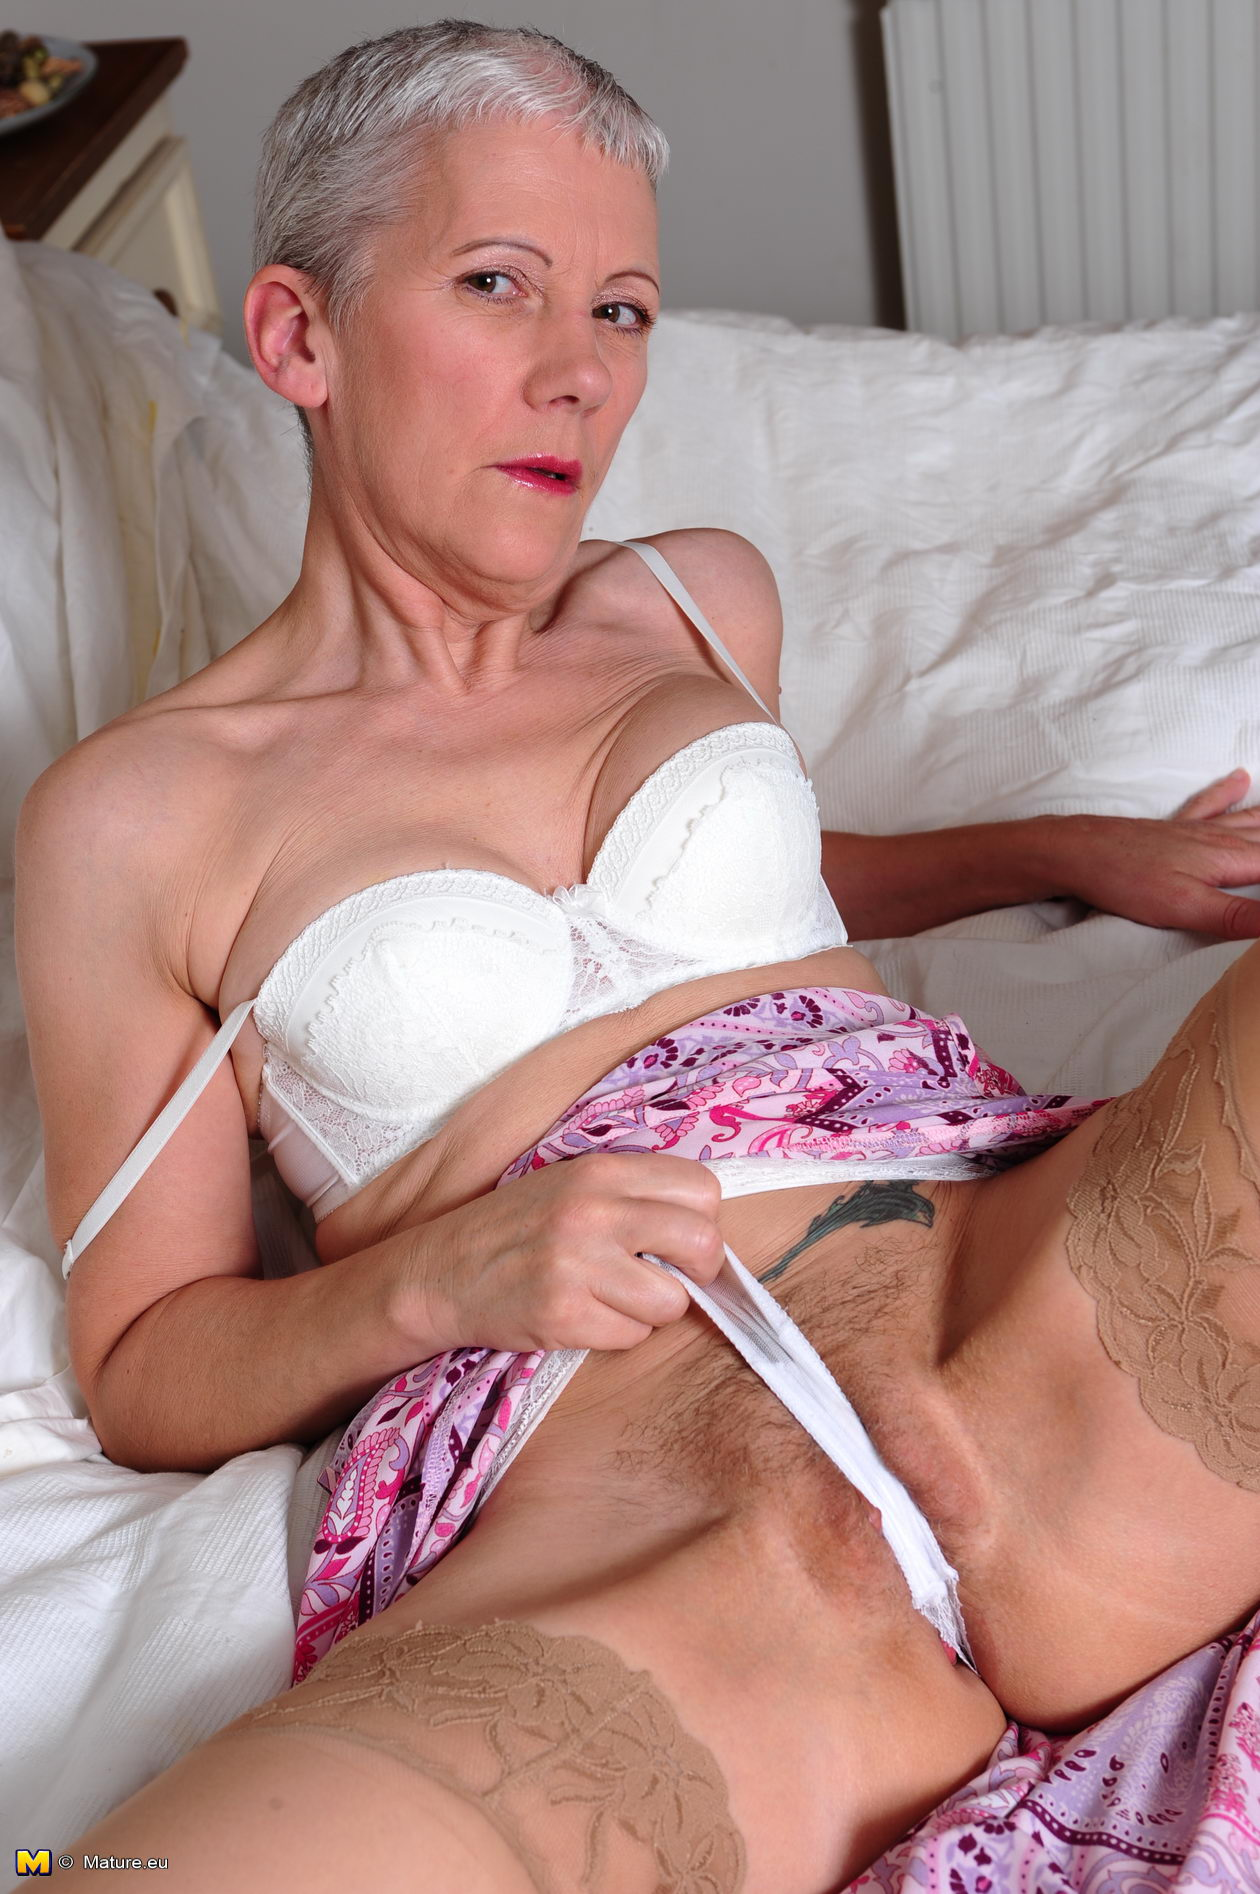 image Nasty and dirty milf using bottles and other objects to fuck